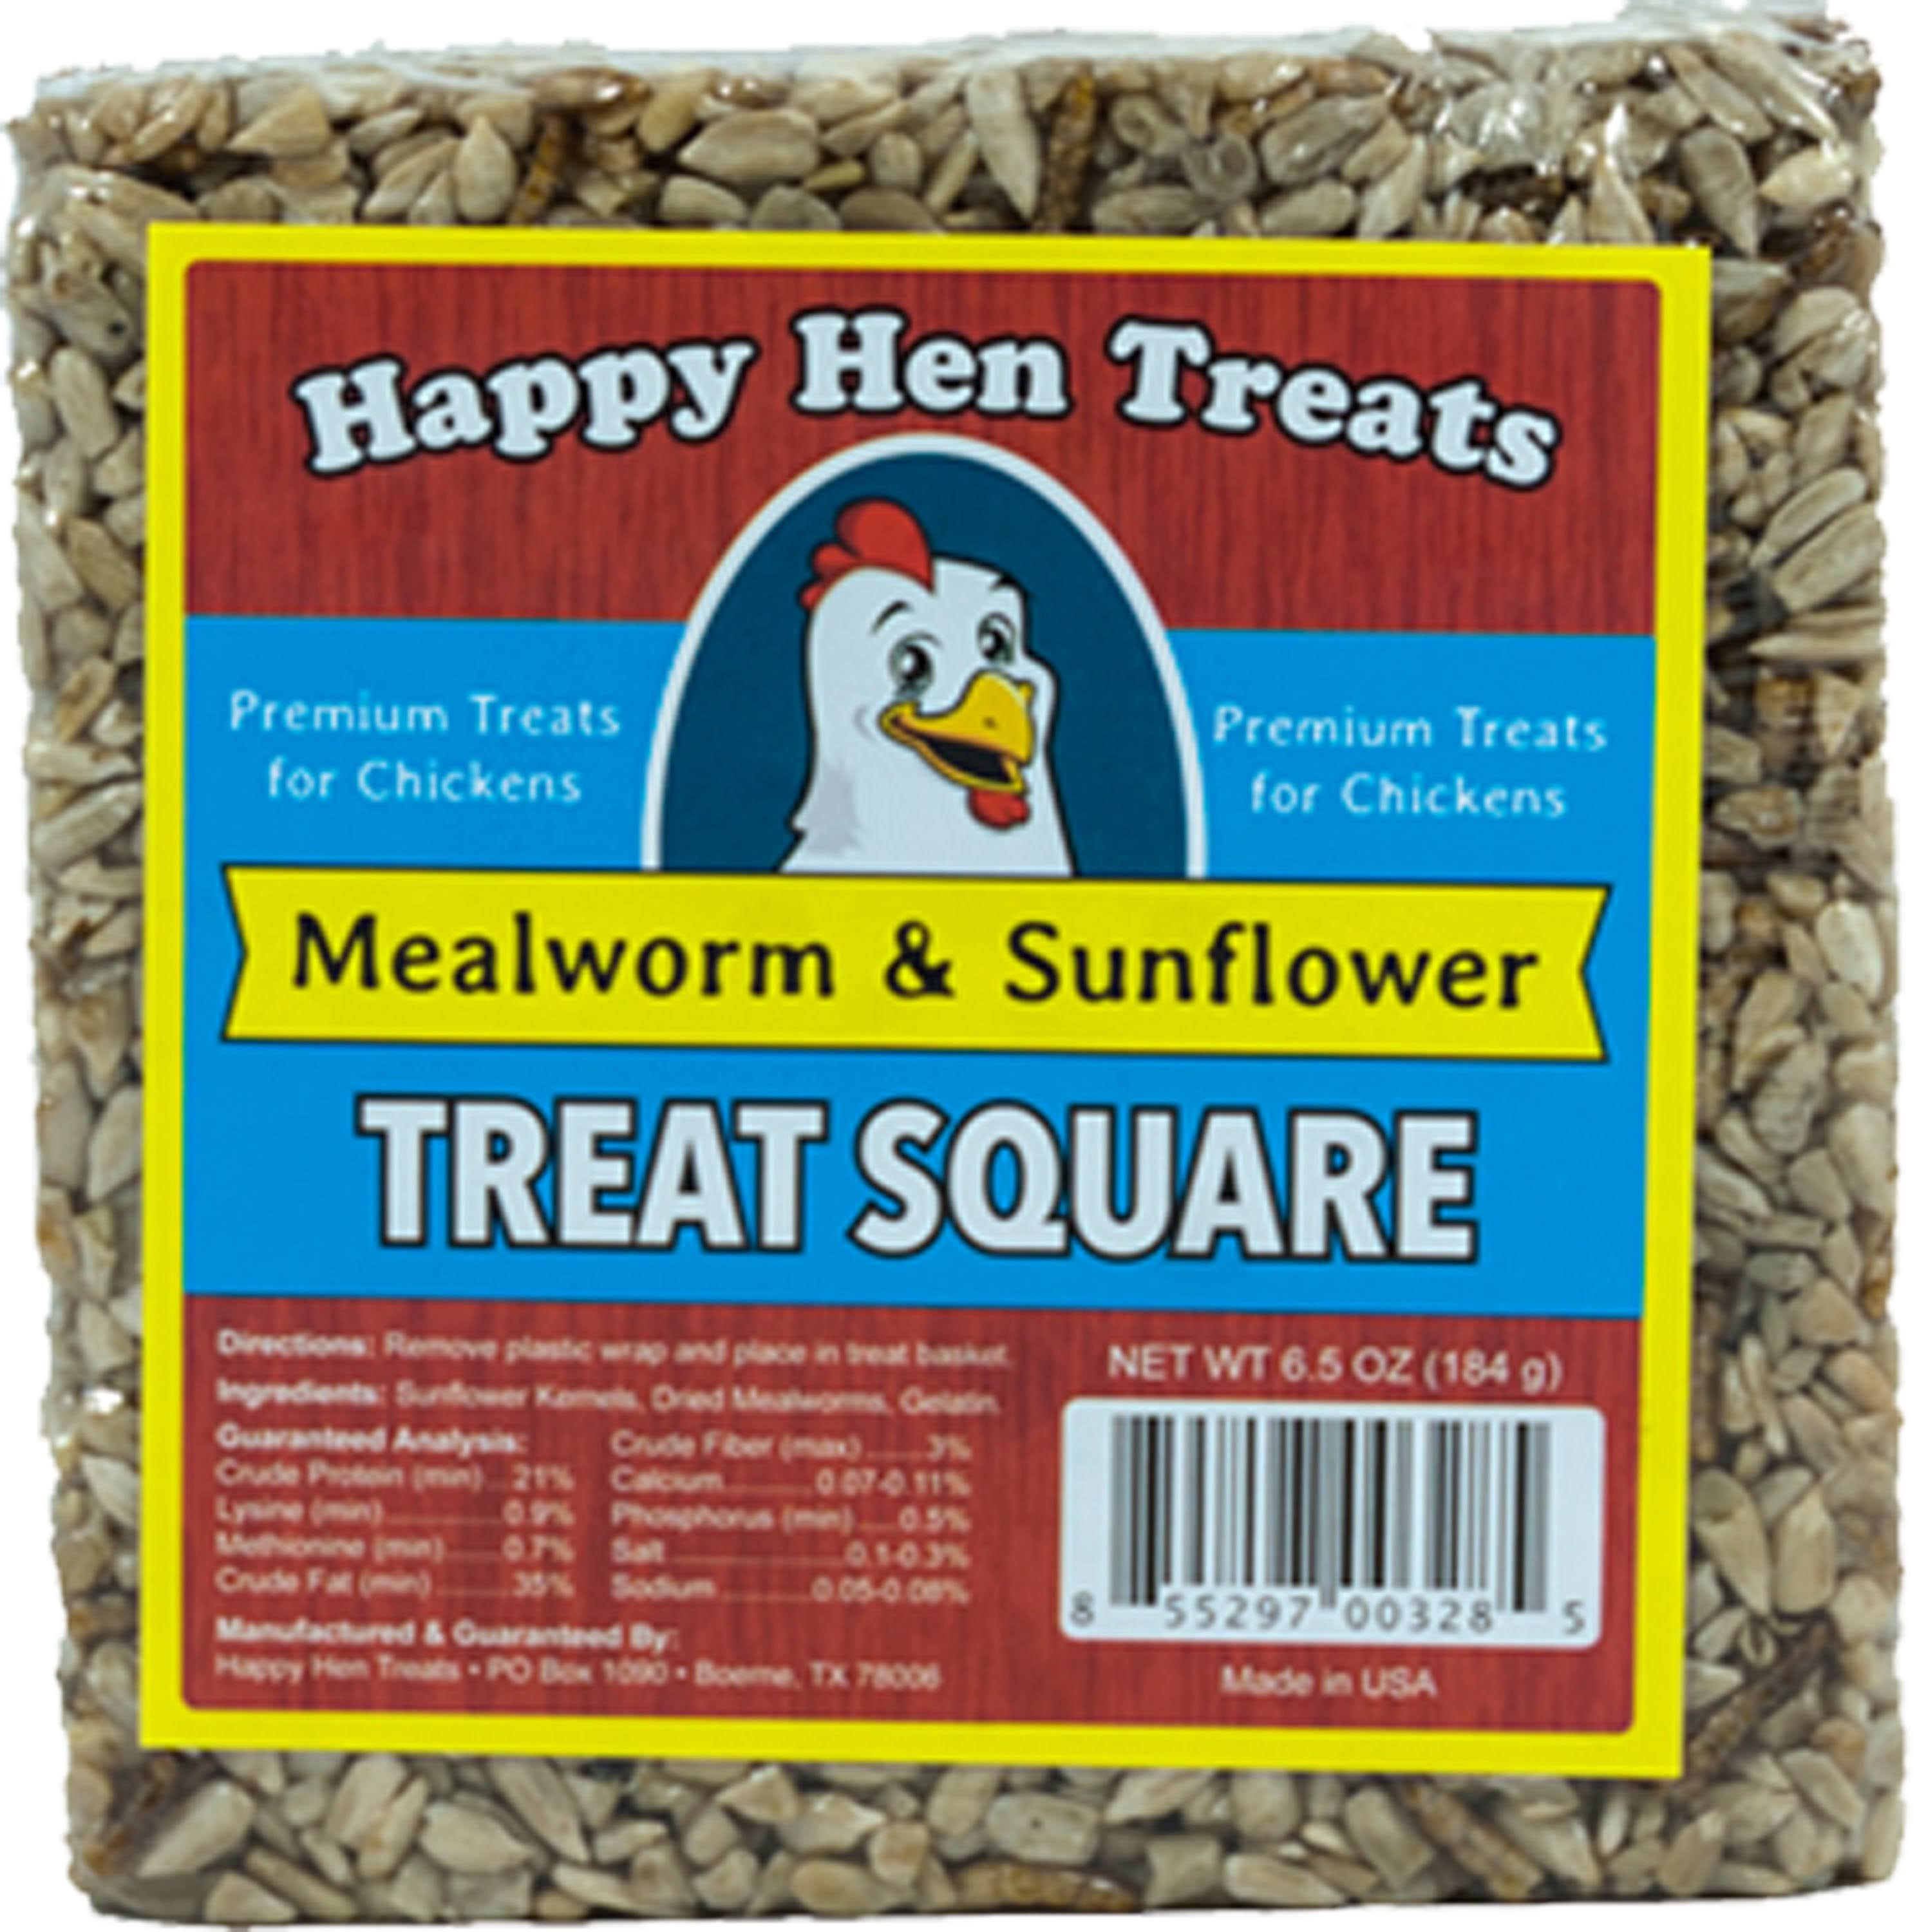 Happy Hen Treats Treat for Pets, Mealworm and Sunflower Treat Square